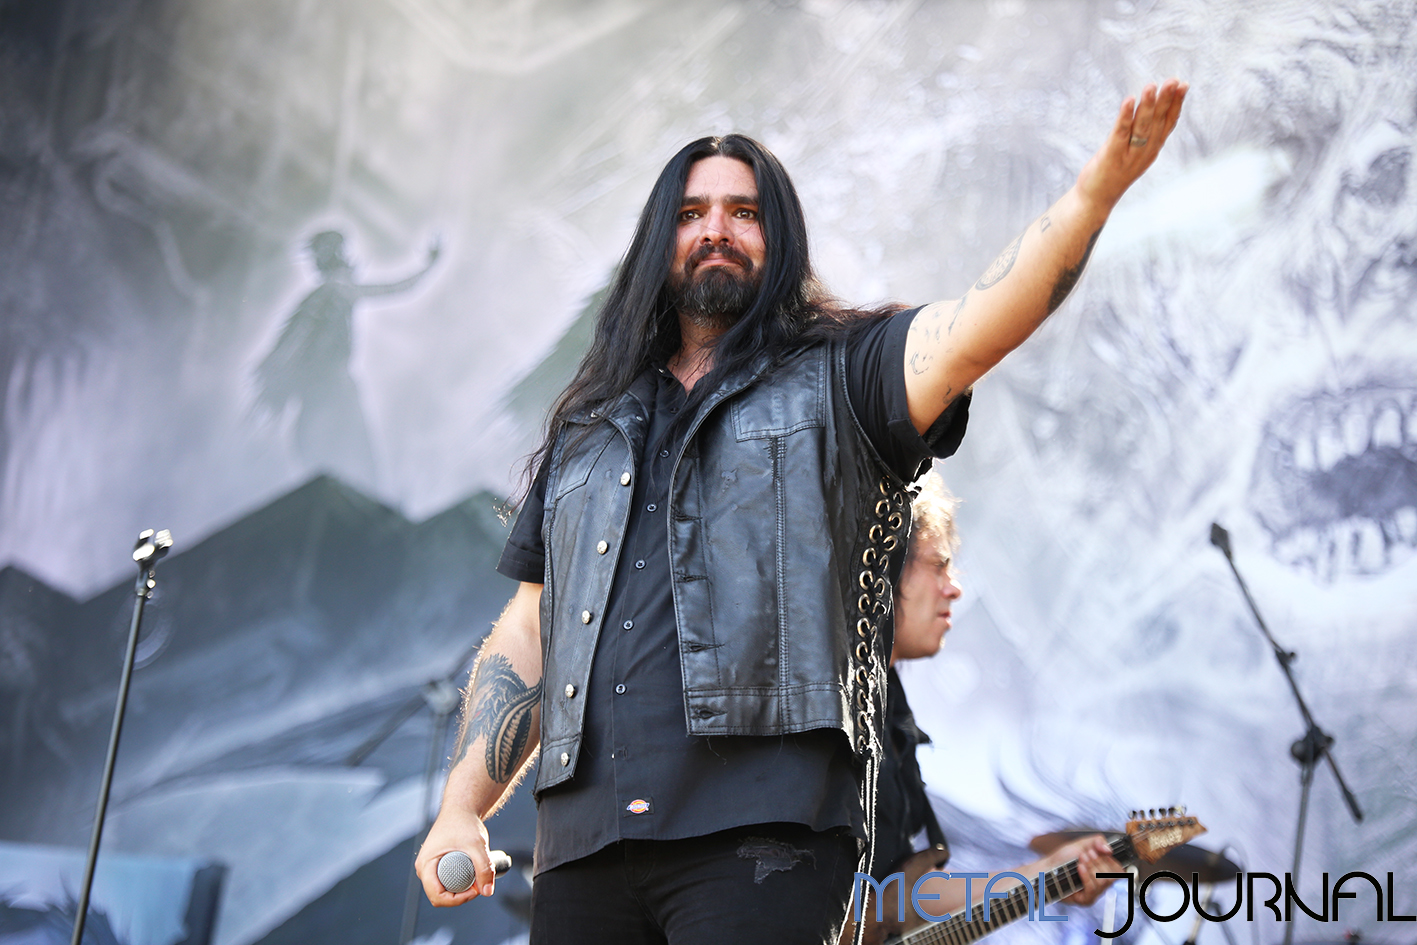 lords of black - leyendas del rock 2019 metal journal pic 5